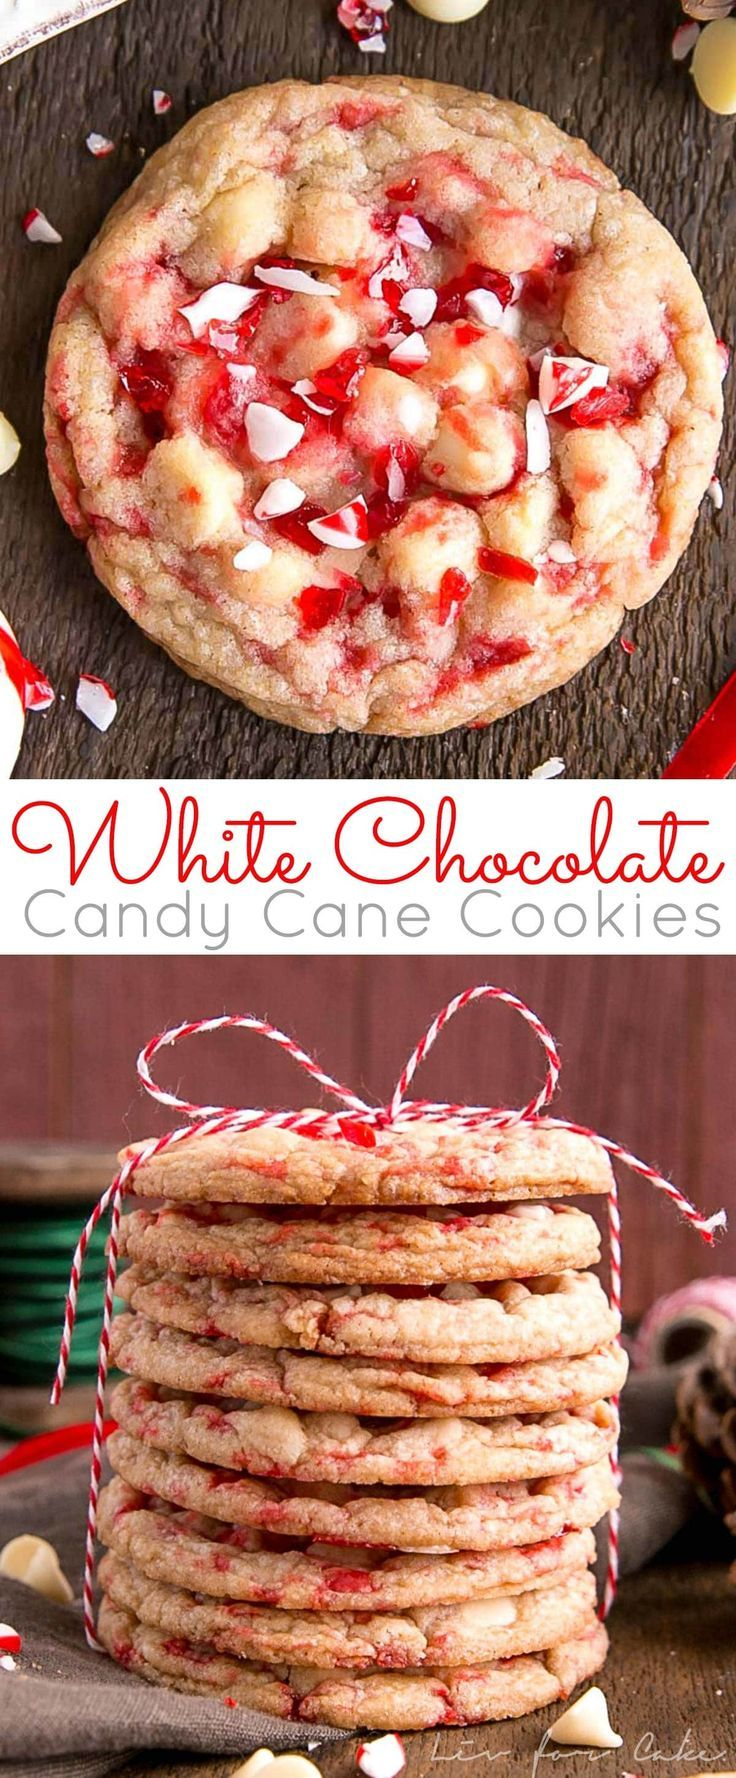 These White Chocolate Candy Cane Cookies Are Crispy Chewy And